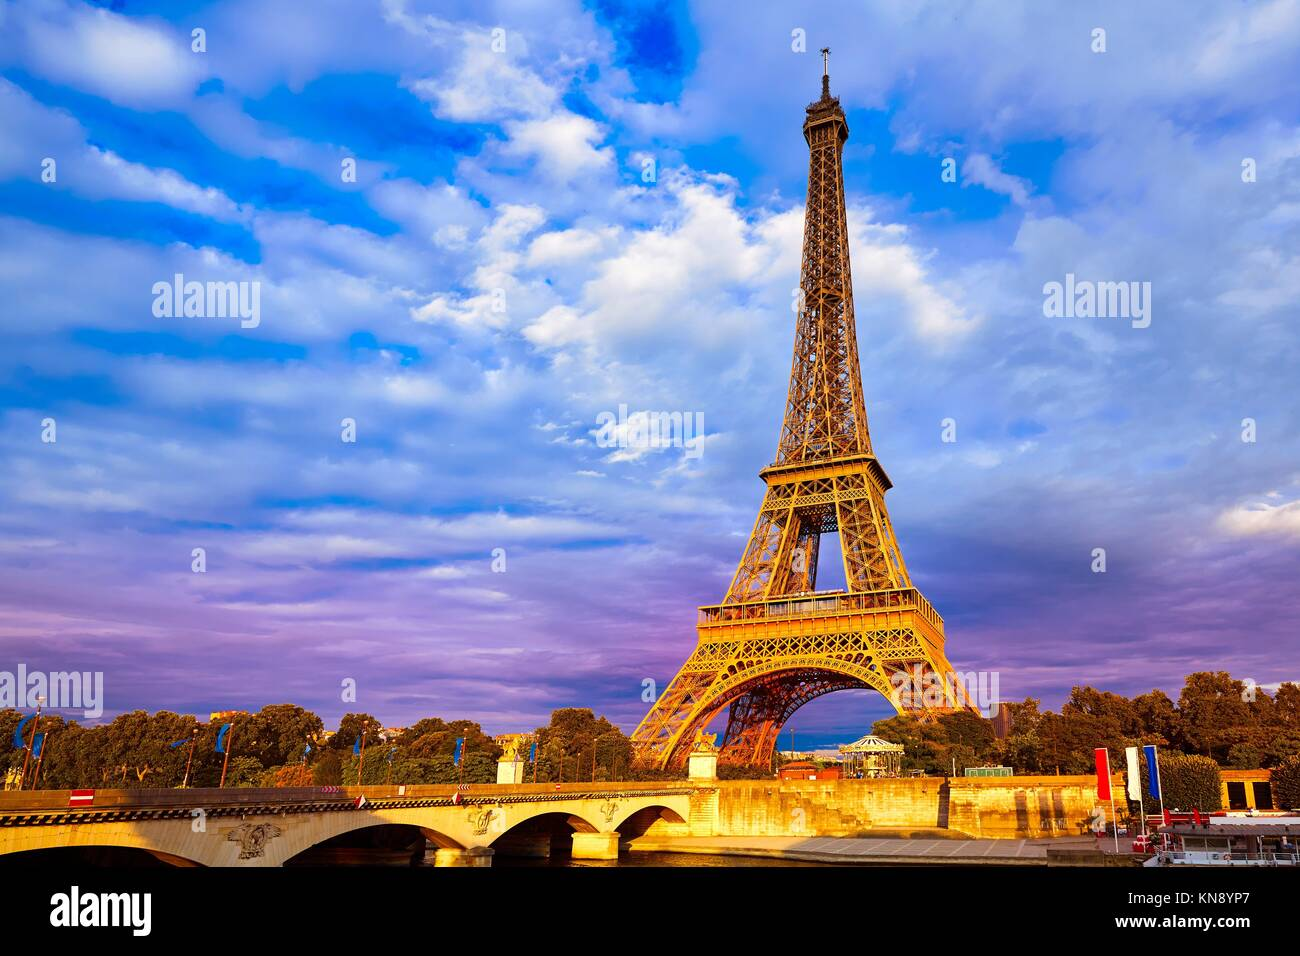 Eiffel tower at sunset in Paris France. - Stock Image